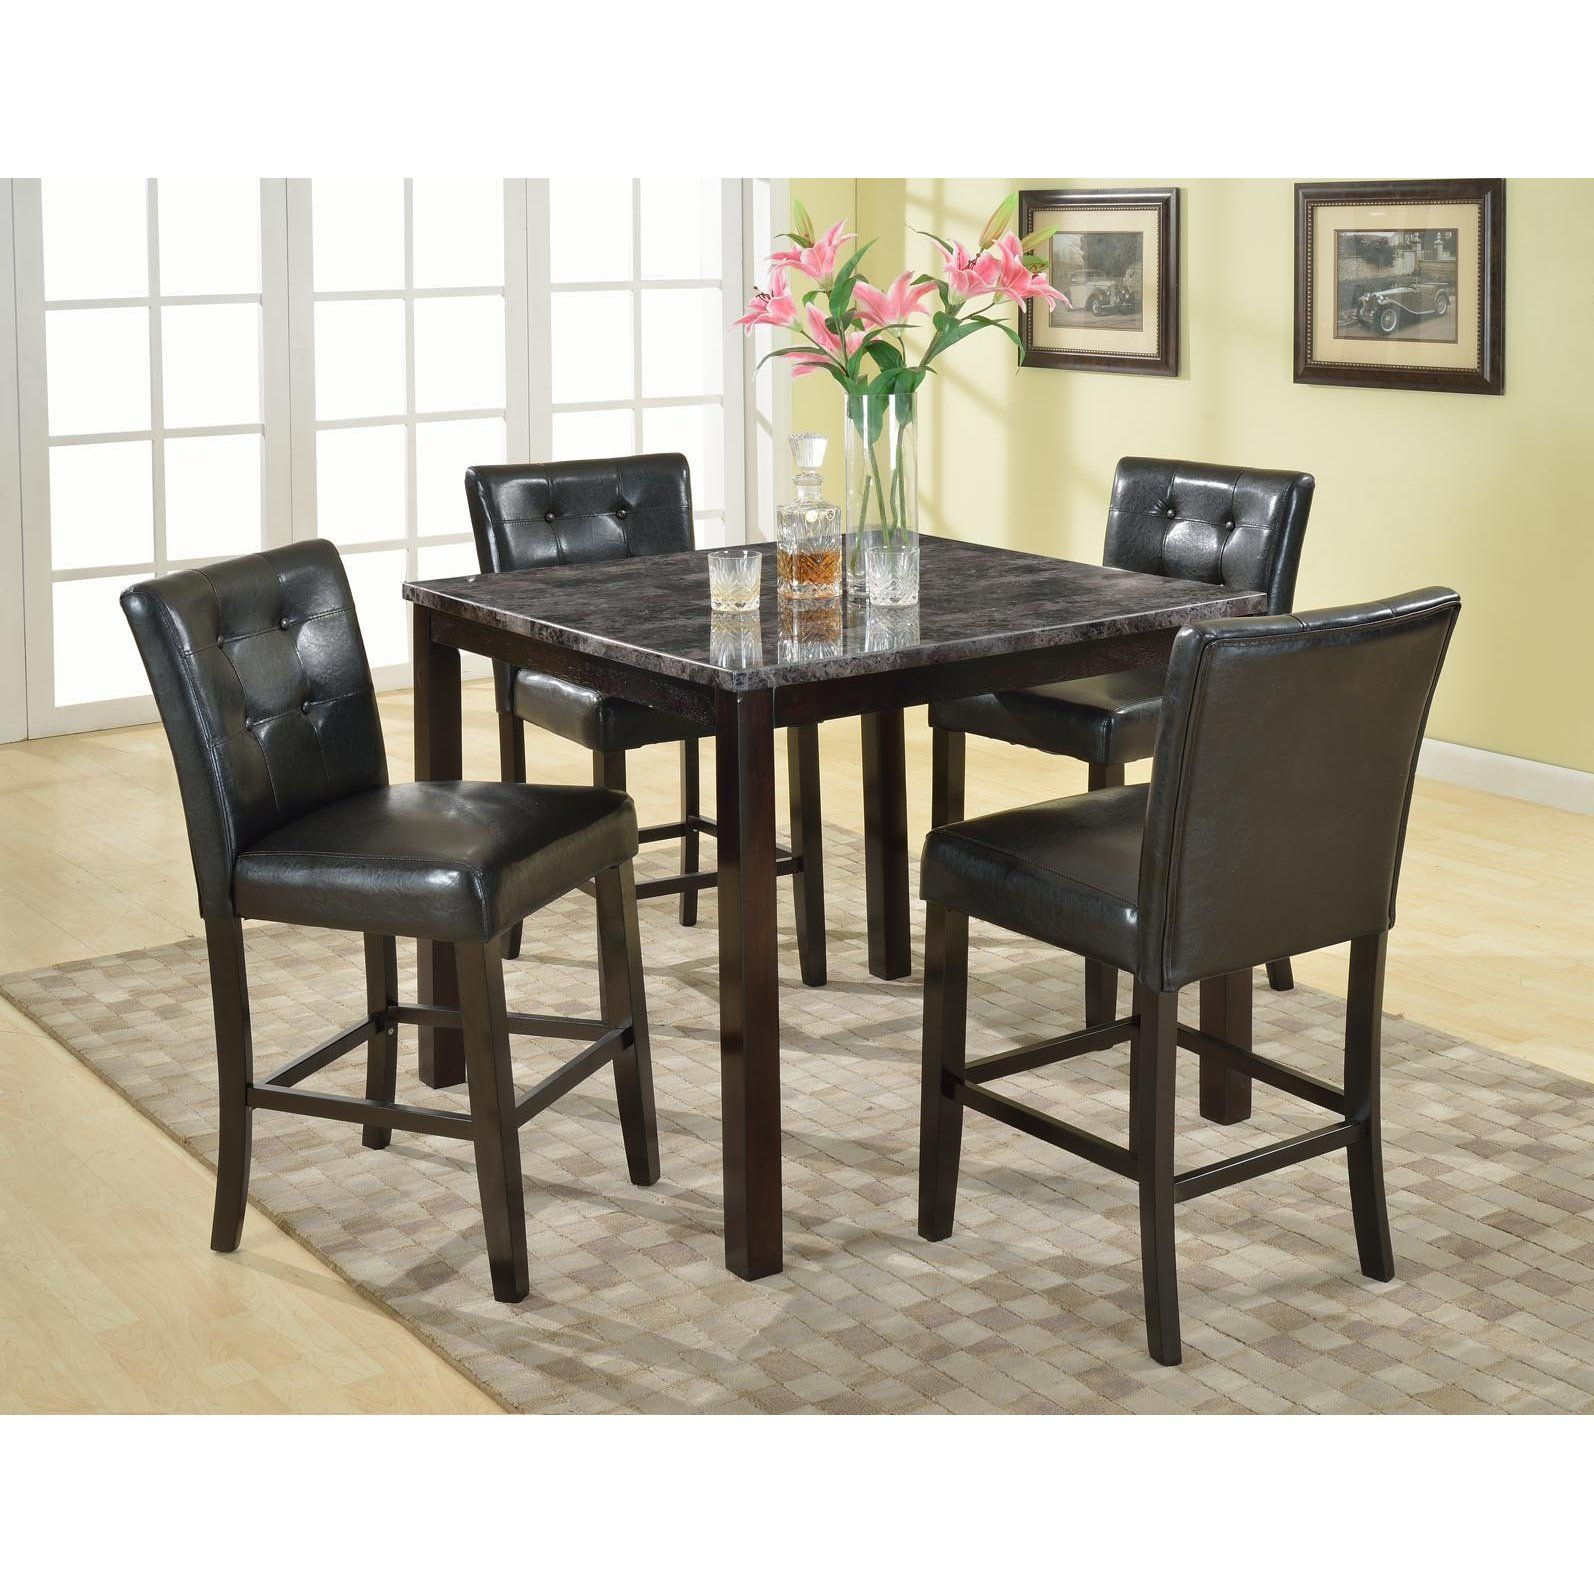 Praia 5pc articifial marble top pub set dining table 4 chairs the rich contemporary design of this counter height dining room collection features faux